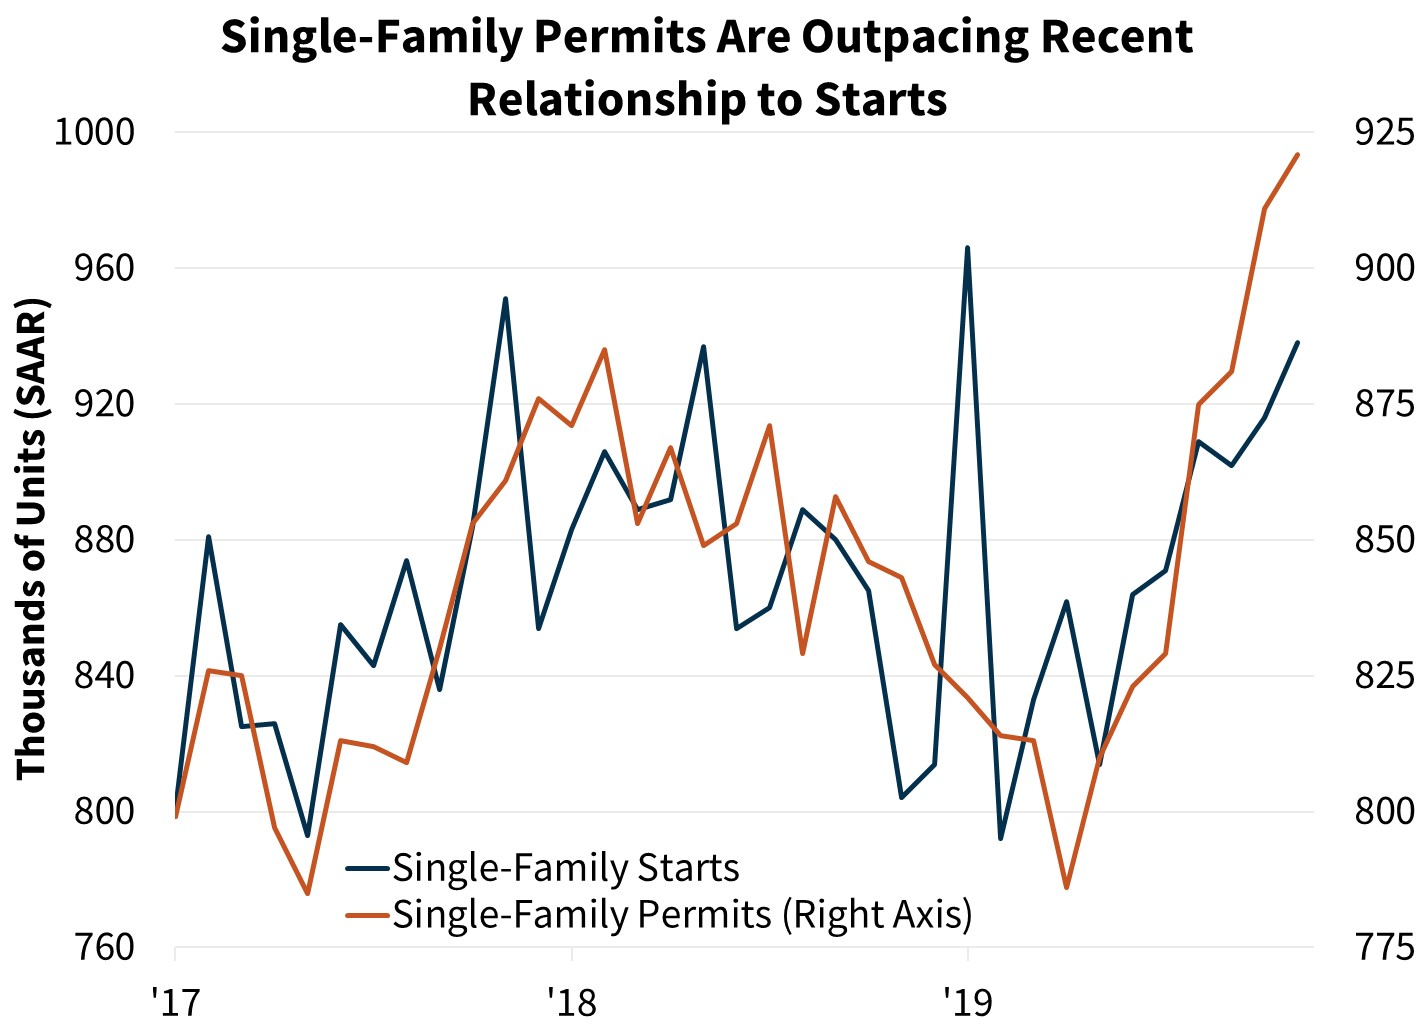 Single-Family Permits Are Outpacing Recent Relationship to Starts